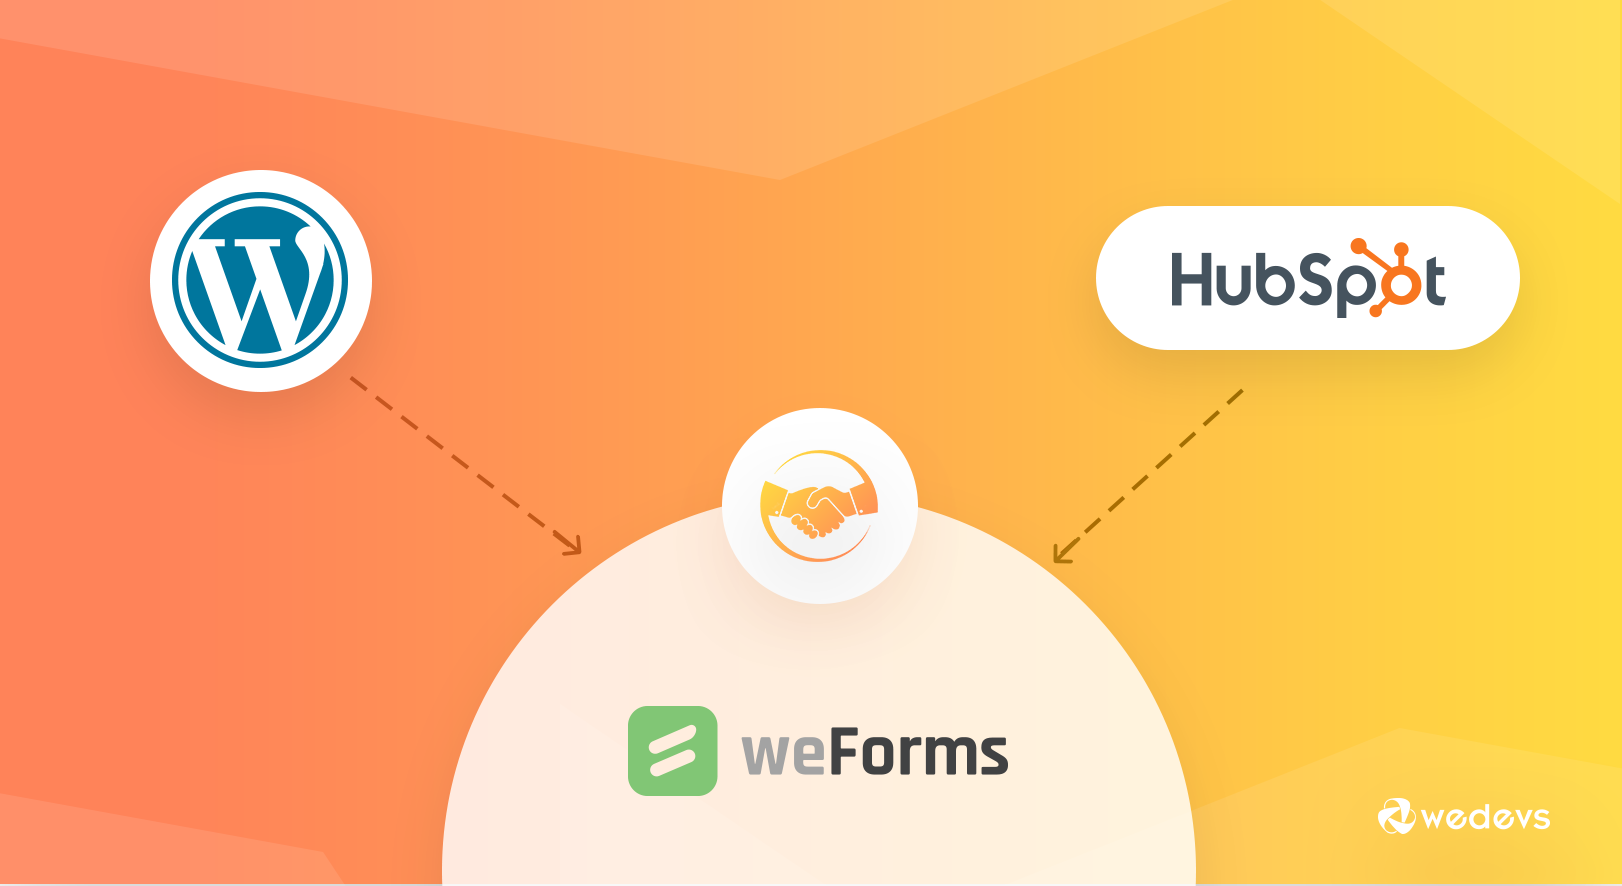 How to Connect WordPress to HubSpot CRM